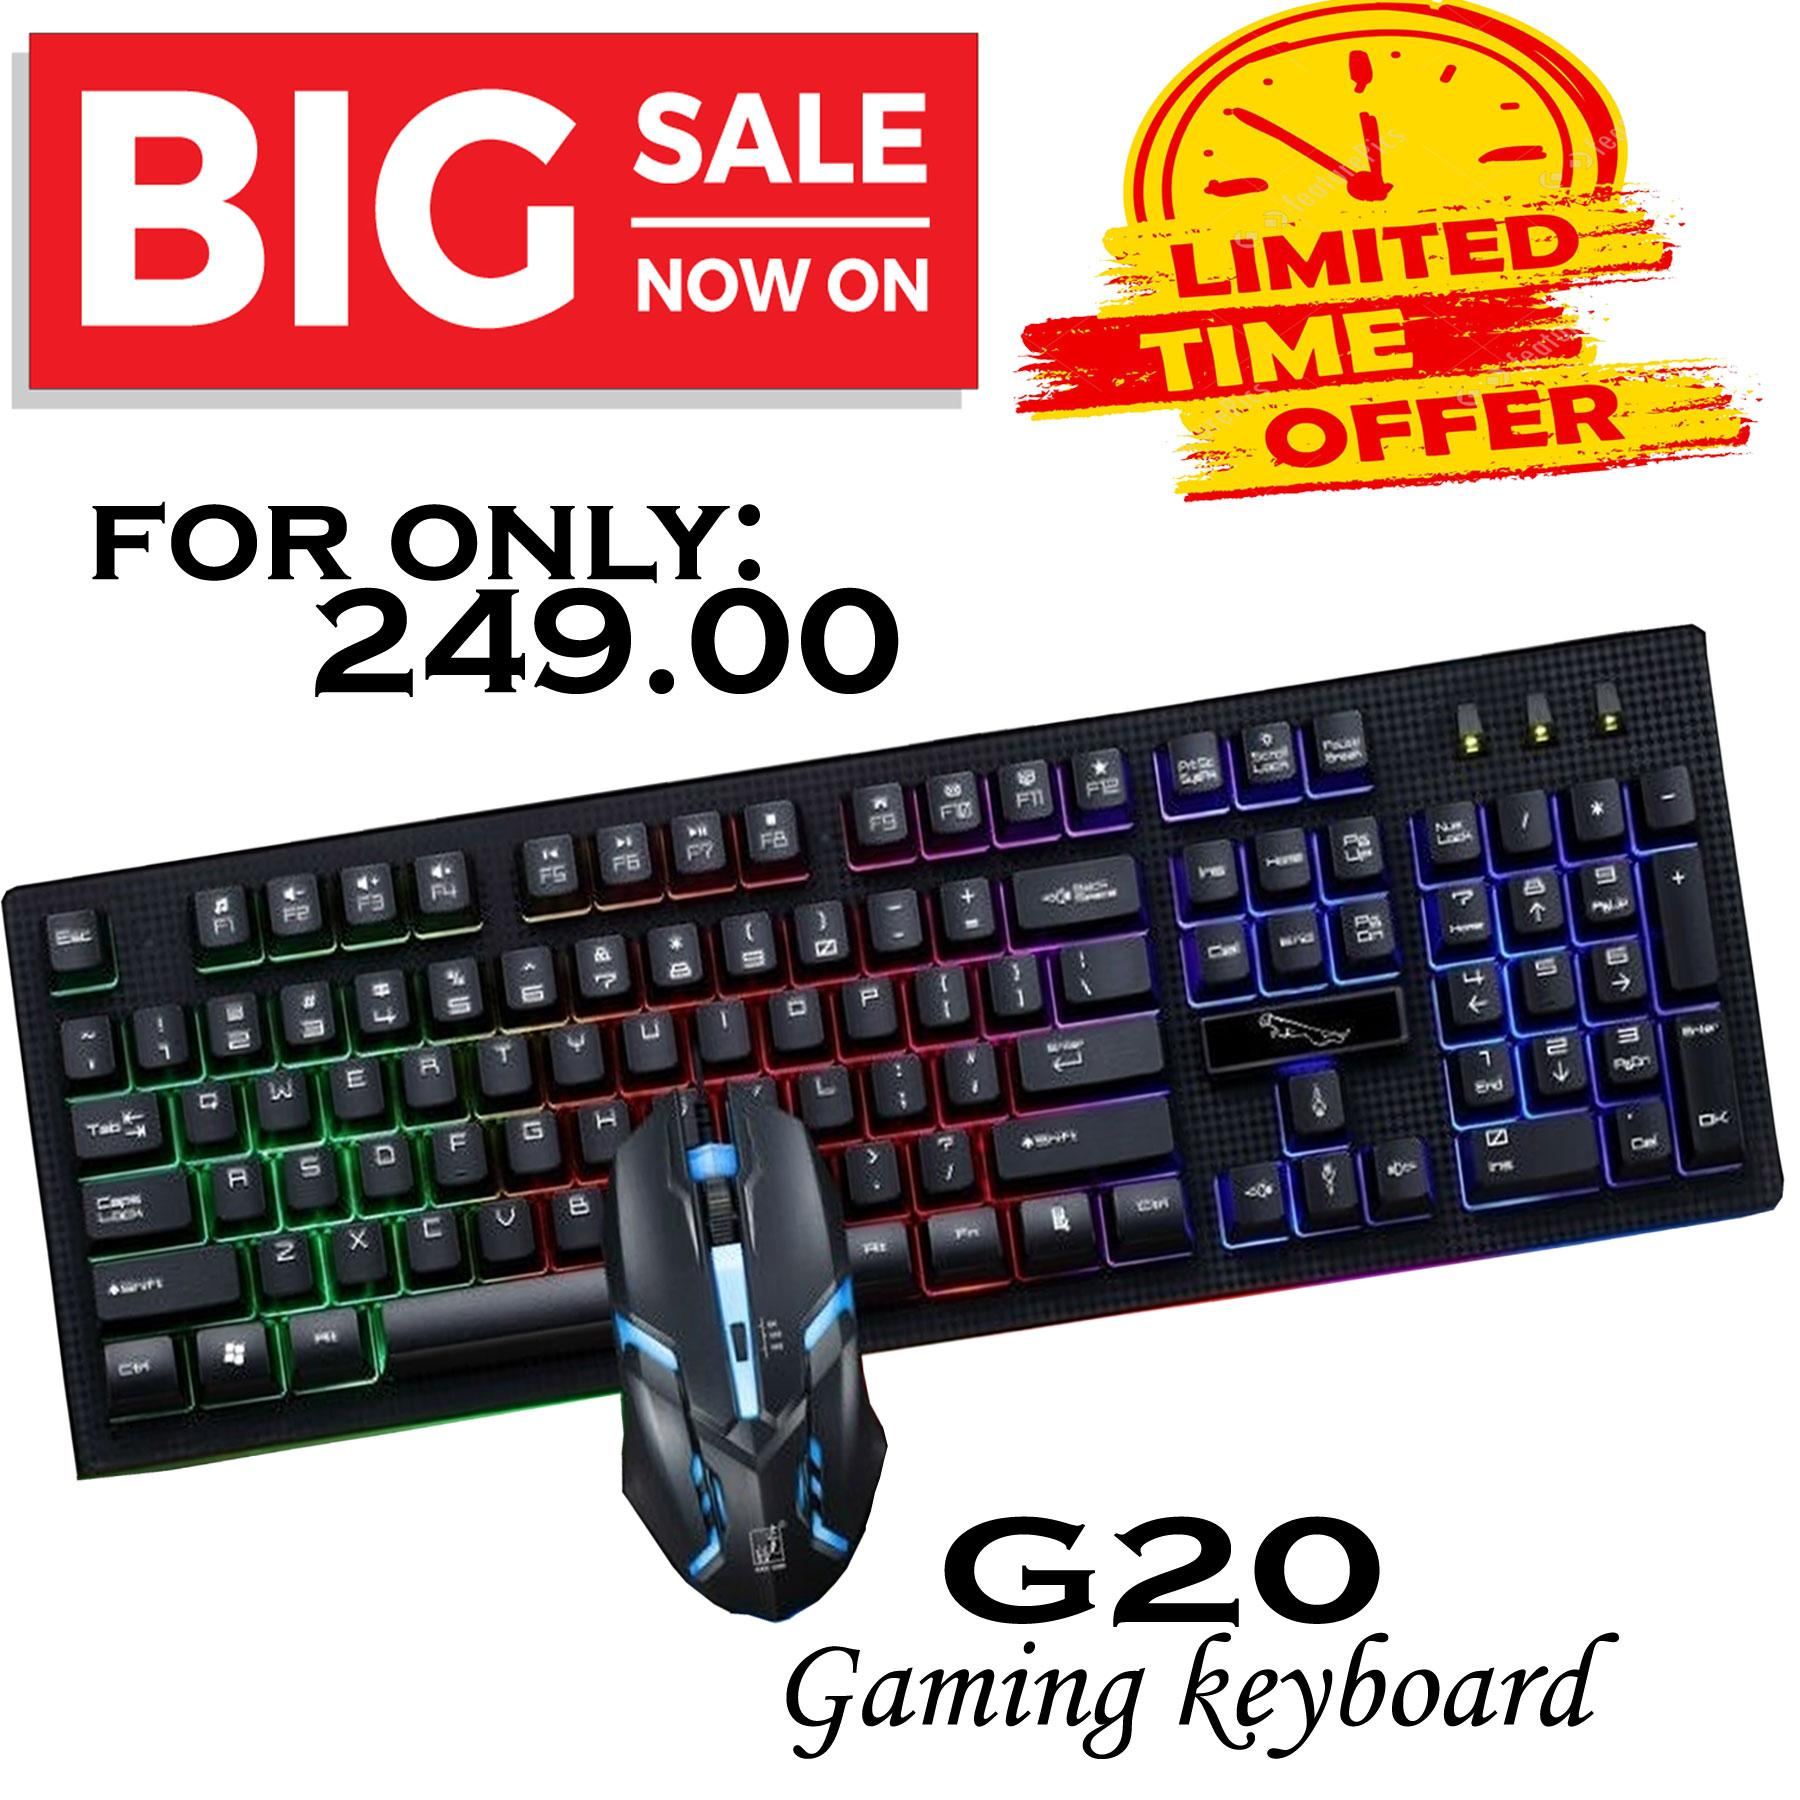 847d73b537f AWEADN G20 Backlight LED Pro Gaming Keyboard USB Wired Powered Gamer  Keyboard With 2000 DPI Mouse